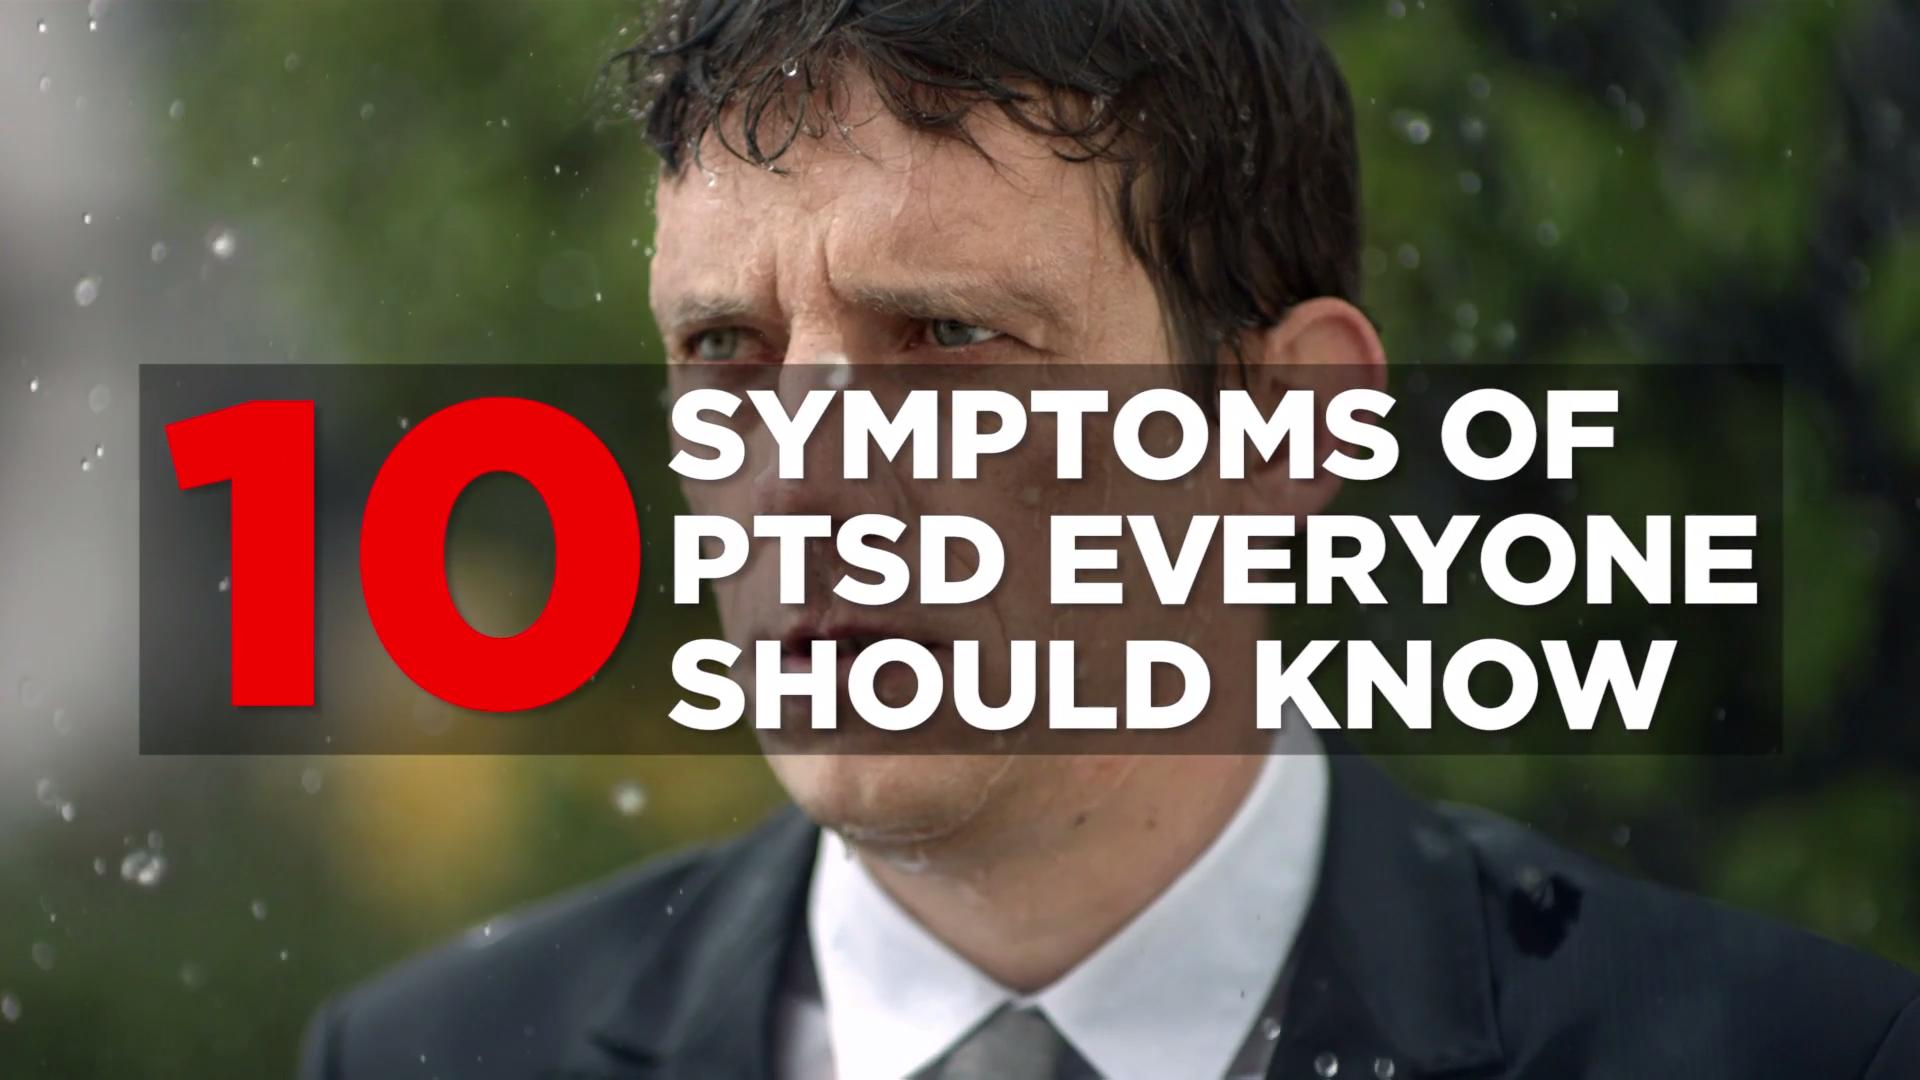 PTSD signs and symptoms